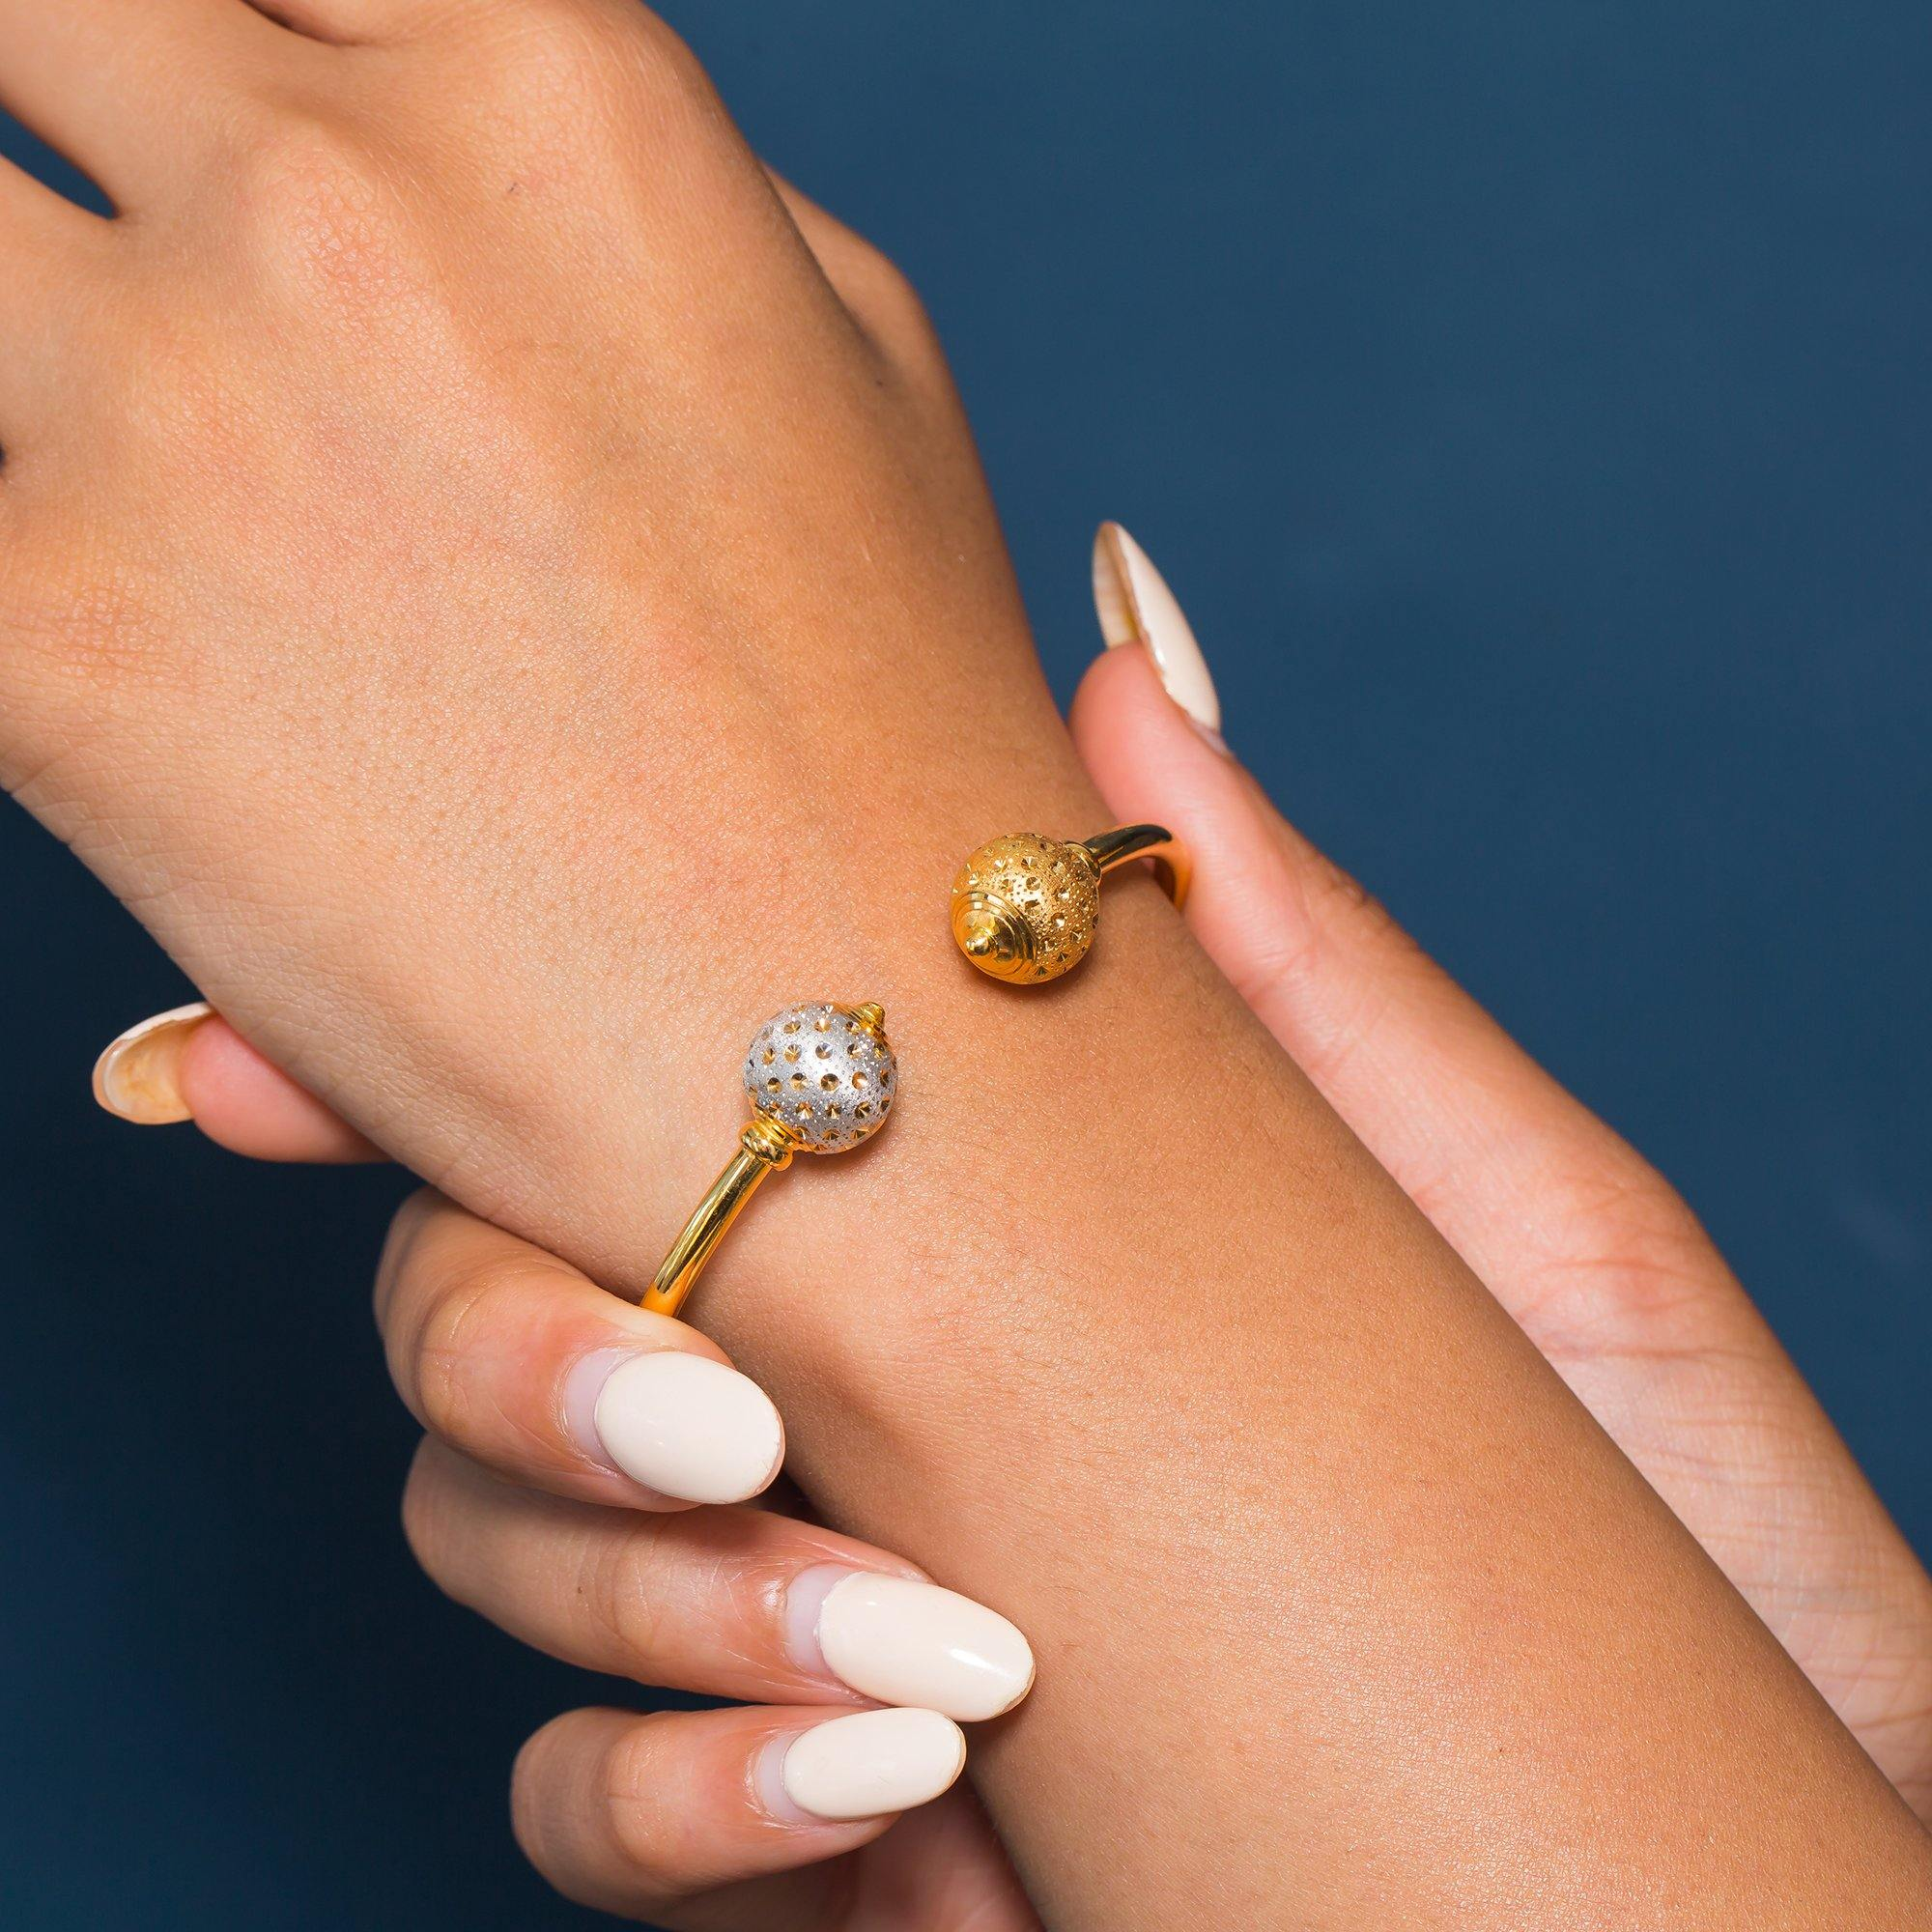 22K Multi Tone Gold Bangle W/ Facing Speckled & Dimpled Accent Balls